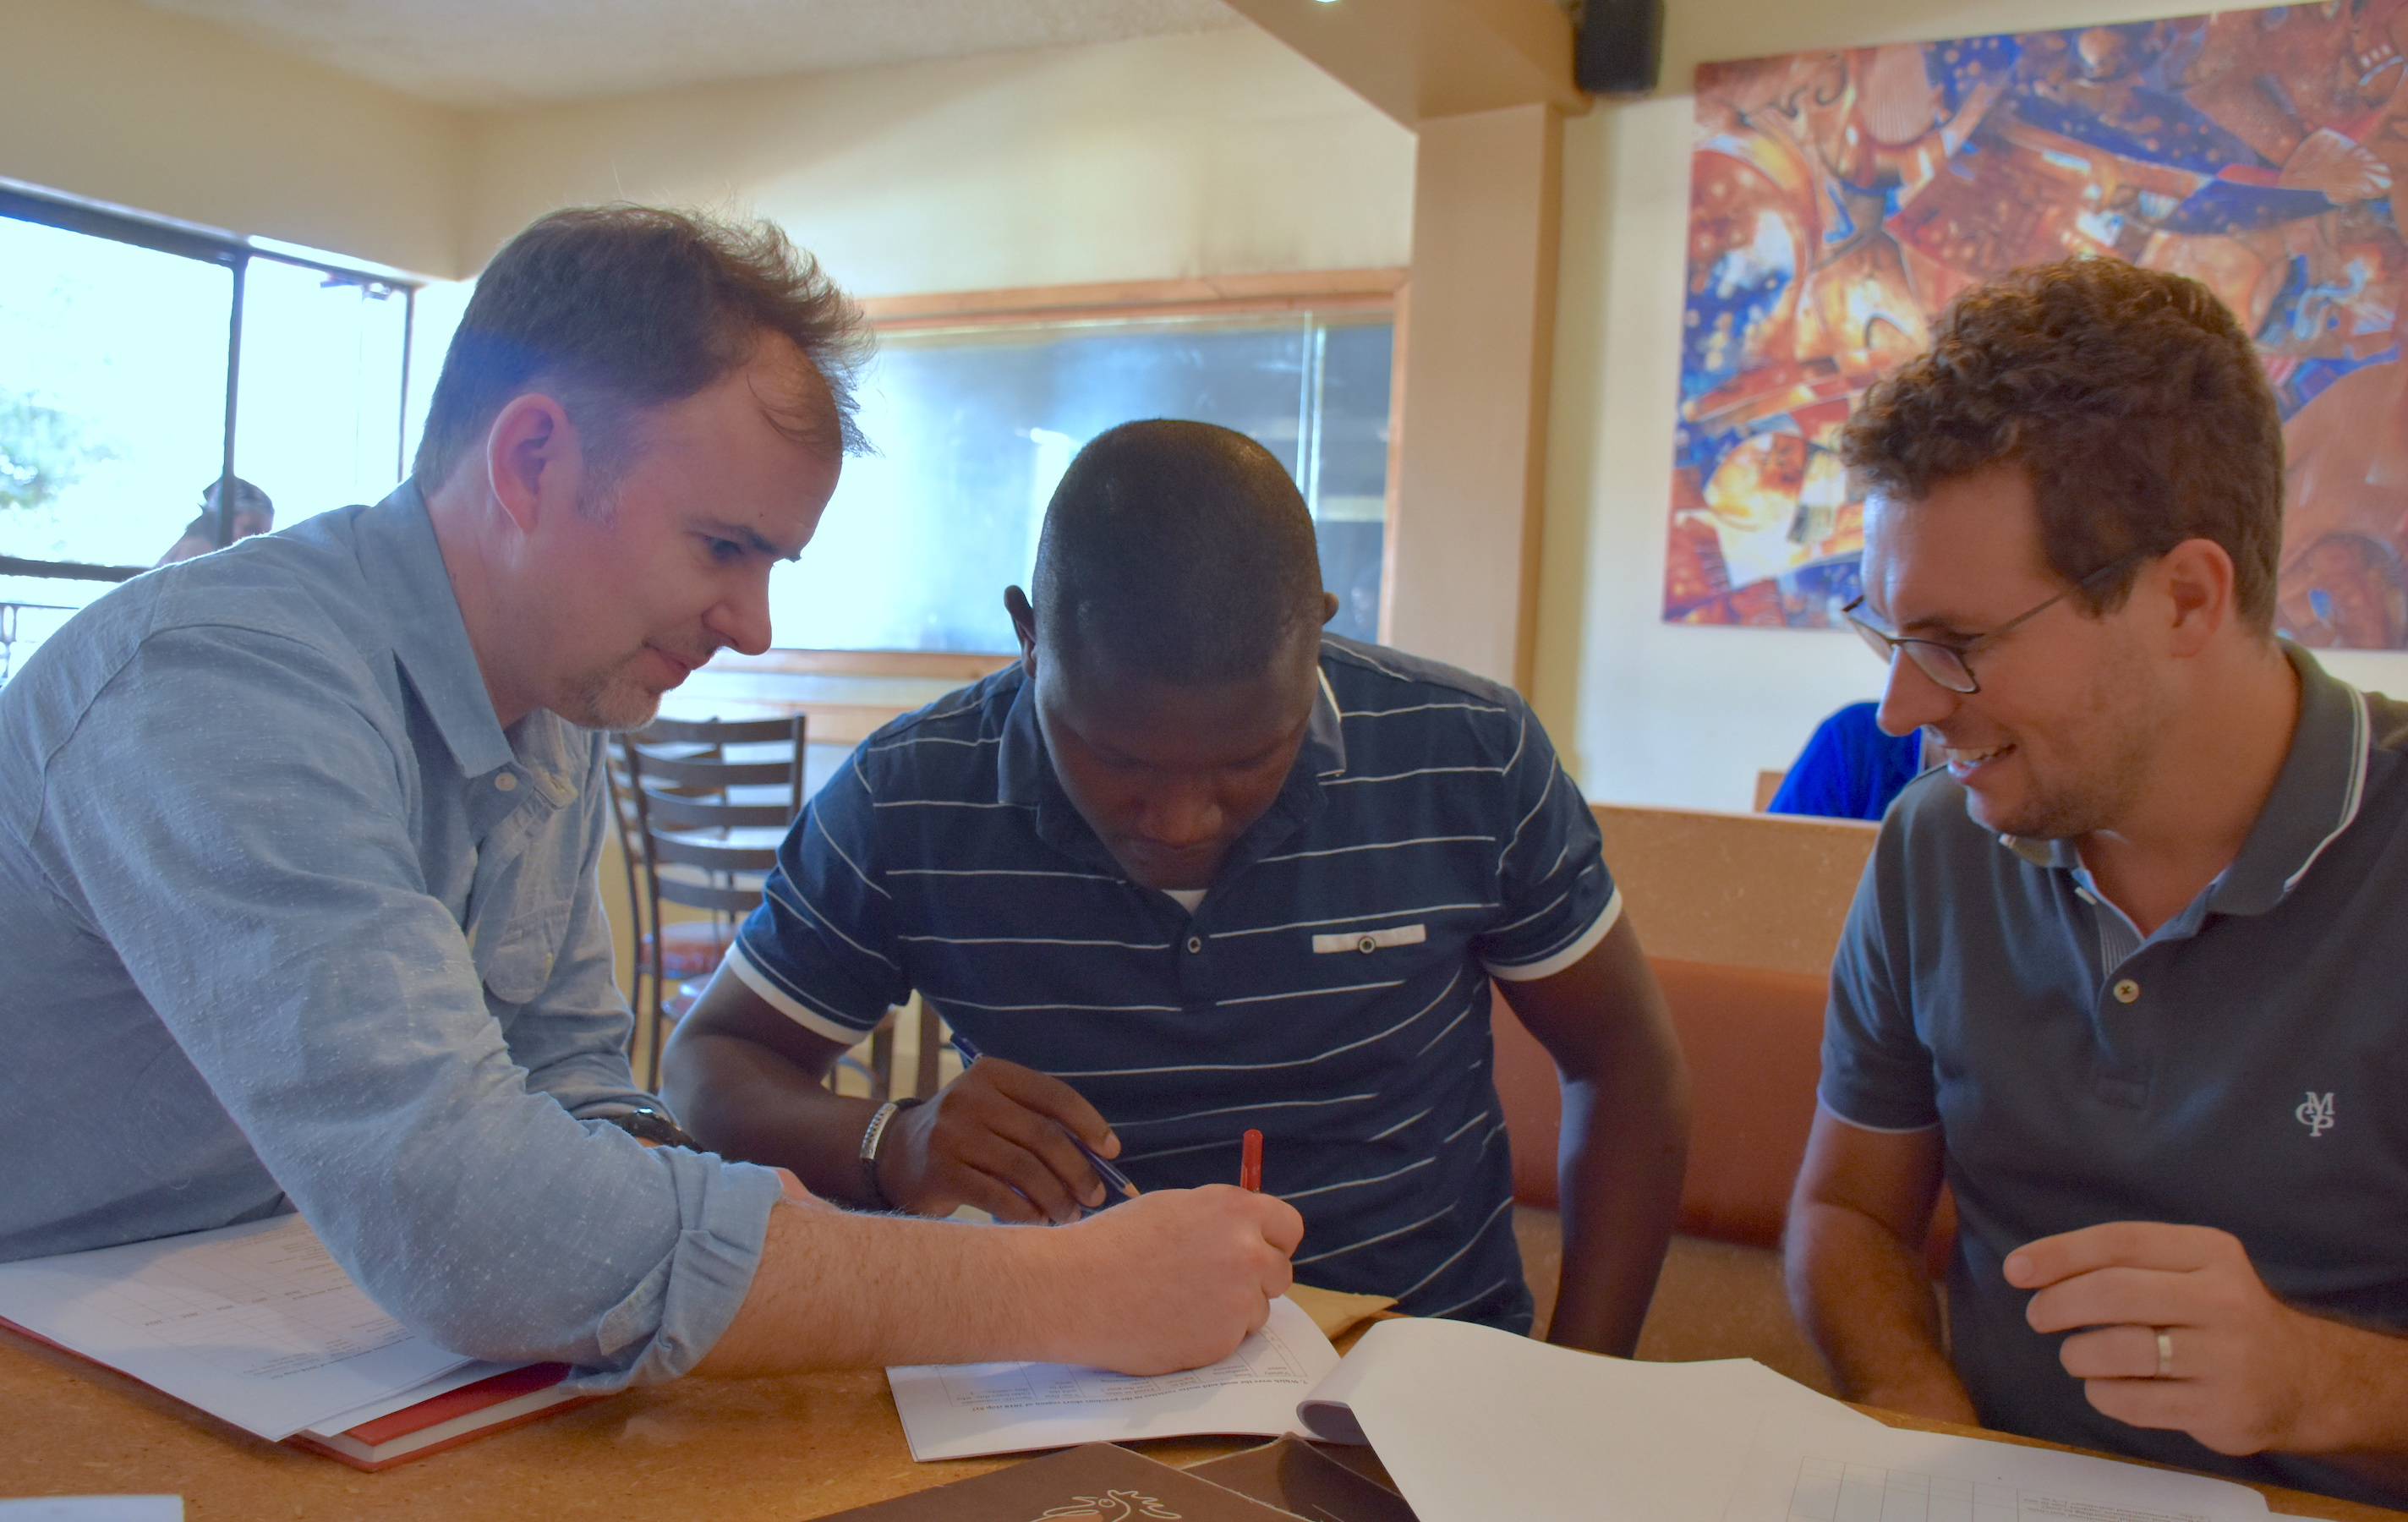 CIMMYT researchers Jason Donovan (left) and Pieter Rutsaert (right) discuss the research study questionnaire with consultant enumerator Victor Kitoto. (Photo: Jerome Bossuet/CIMMYT)